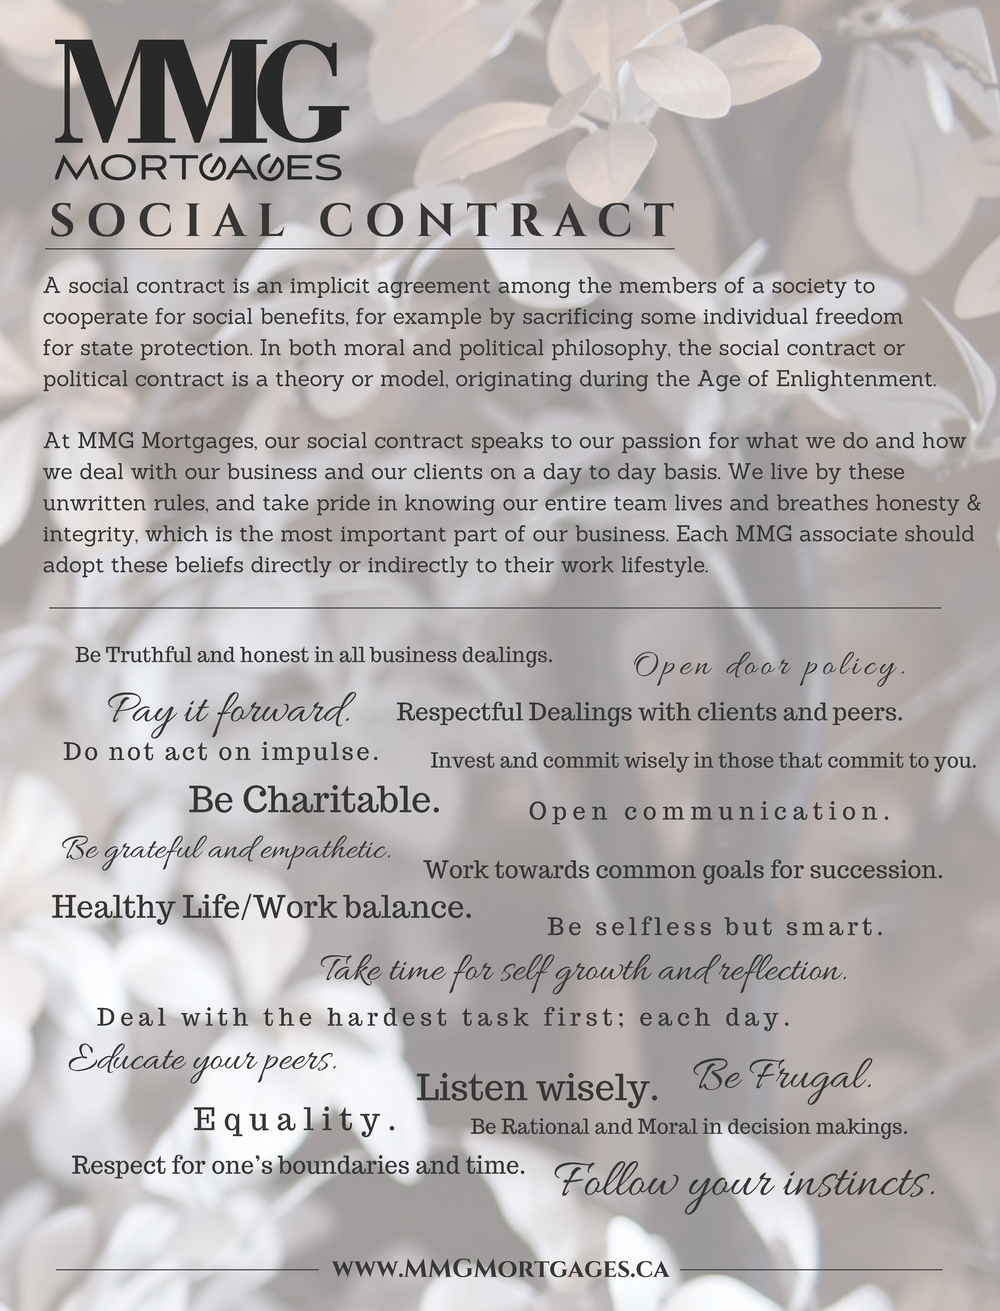 MMG Mortgages: Social Contract - A social contract is an implicit agreement among the members of a society to cooperate for social benefits, for example by sacrificing some individual freedom for state protection. In both moral and political philosophy, the social contract or political contract is a theory or model, originating during the Age of Enlightenment.At MMG Mortgages, our social contract speaks to our passion for what we do and how we deal with our business and our clients on a day to day basis. We live by these unwritten rules, and take pride in knowing our entire team lives and breathes honesty & integrity, which is the most important part of our business.